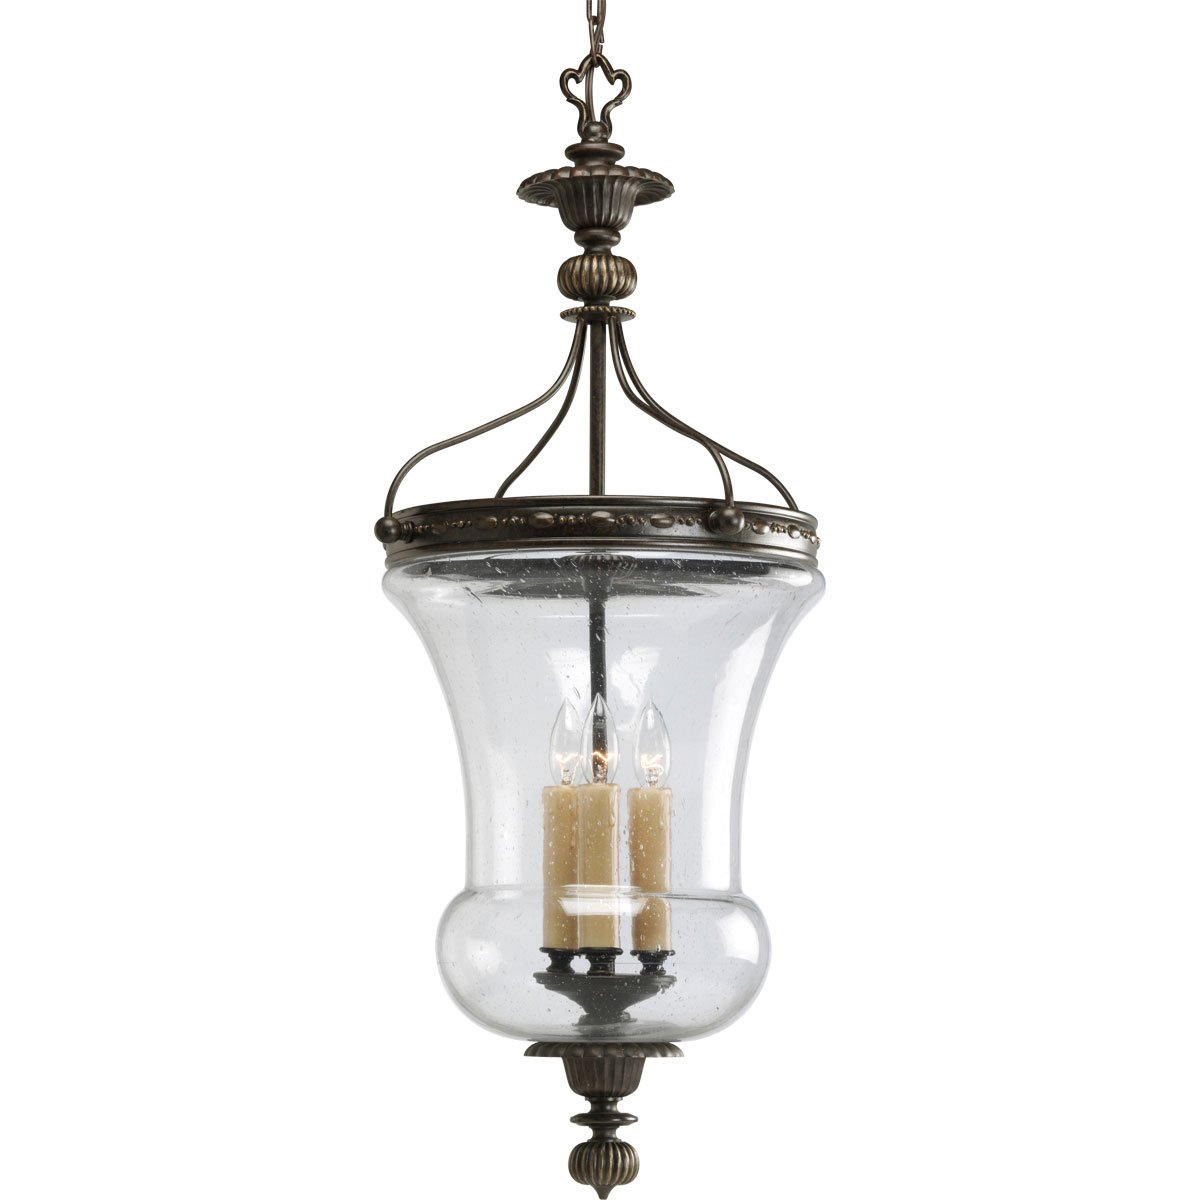 Progree Lighting Progress Lighting Archie Collection 2 Light Antique Nickel